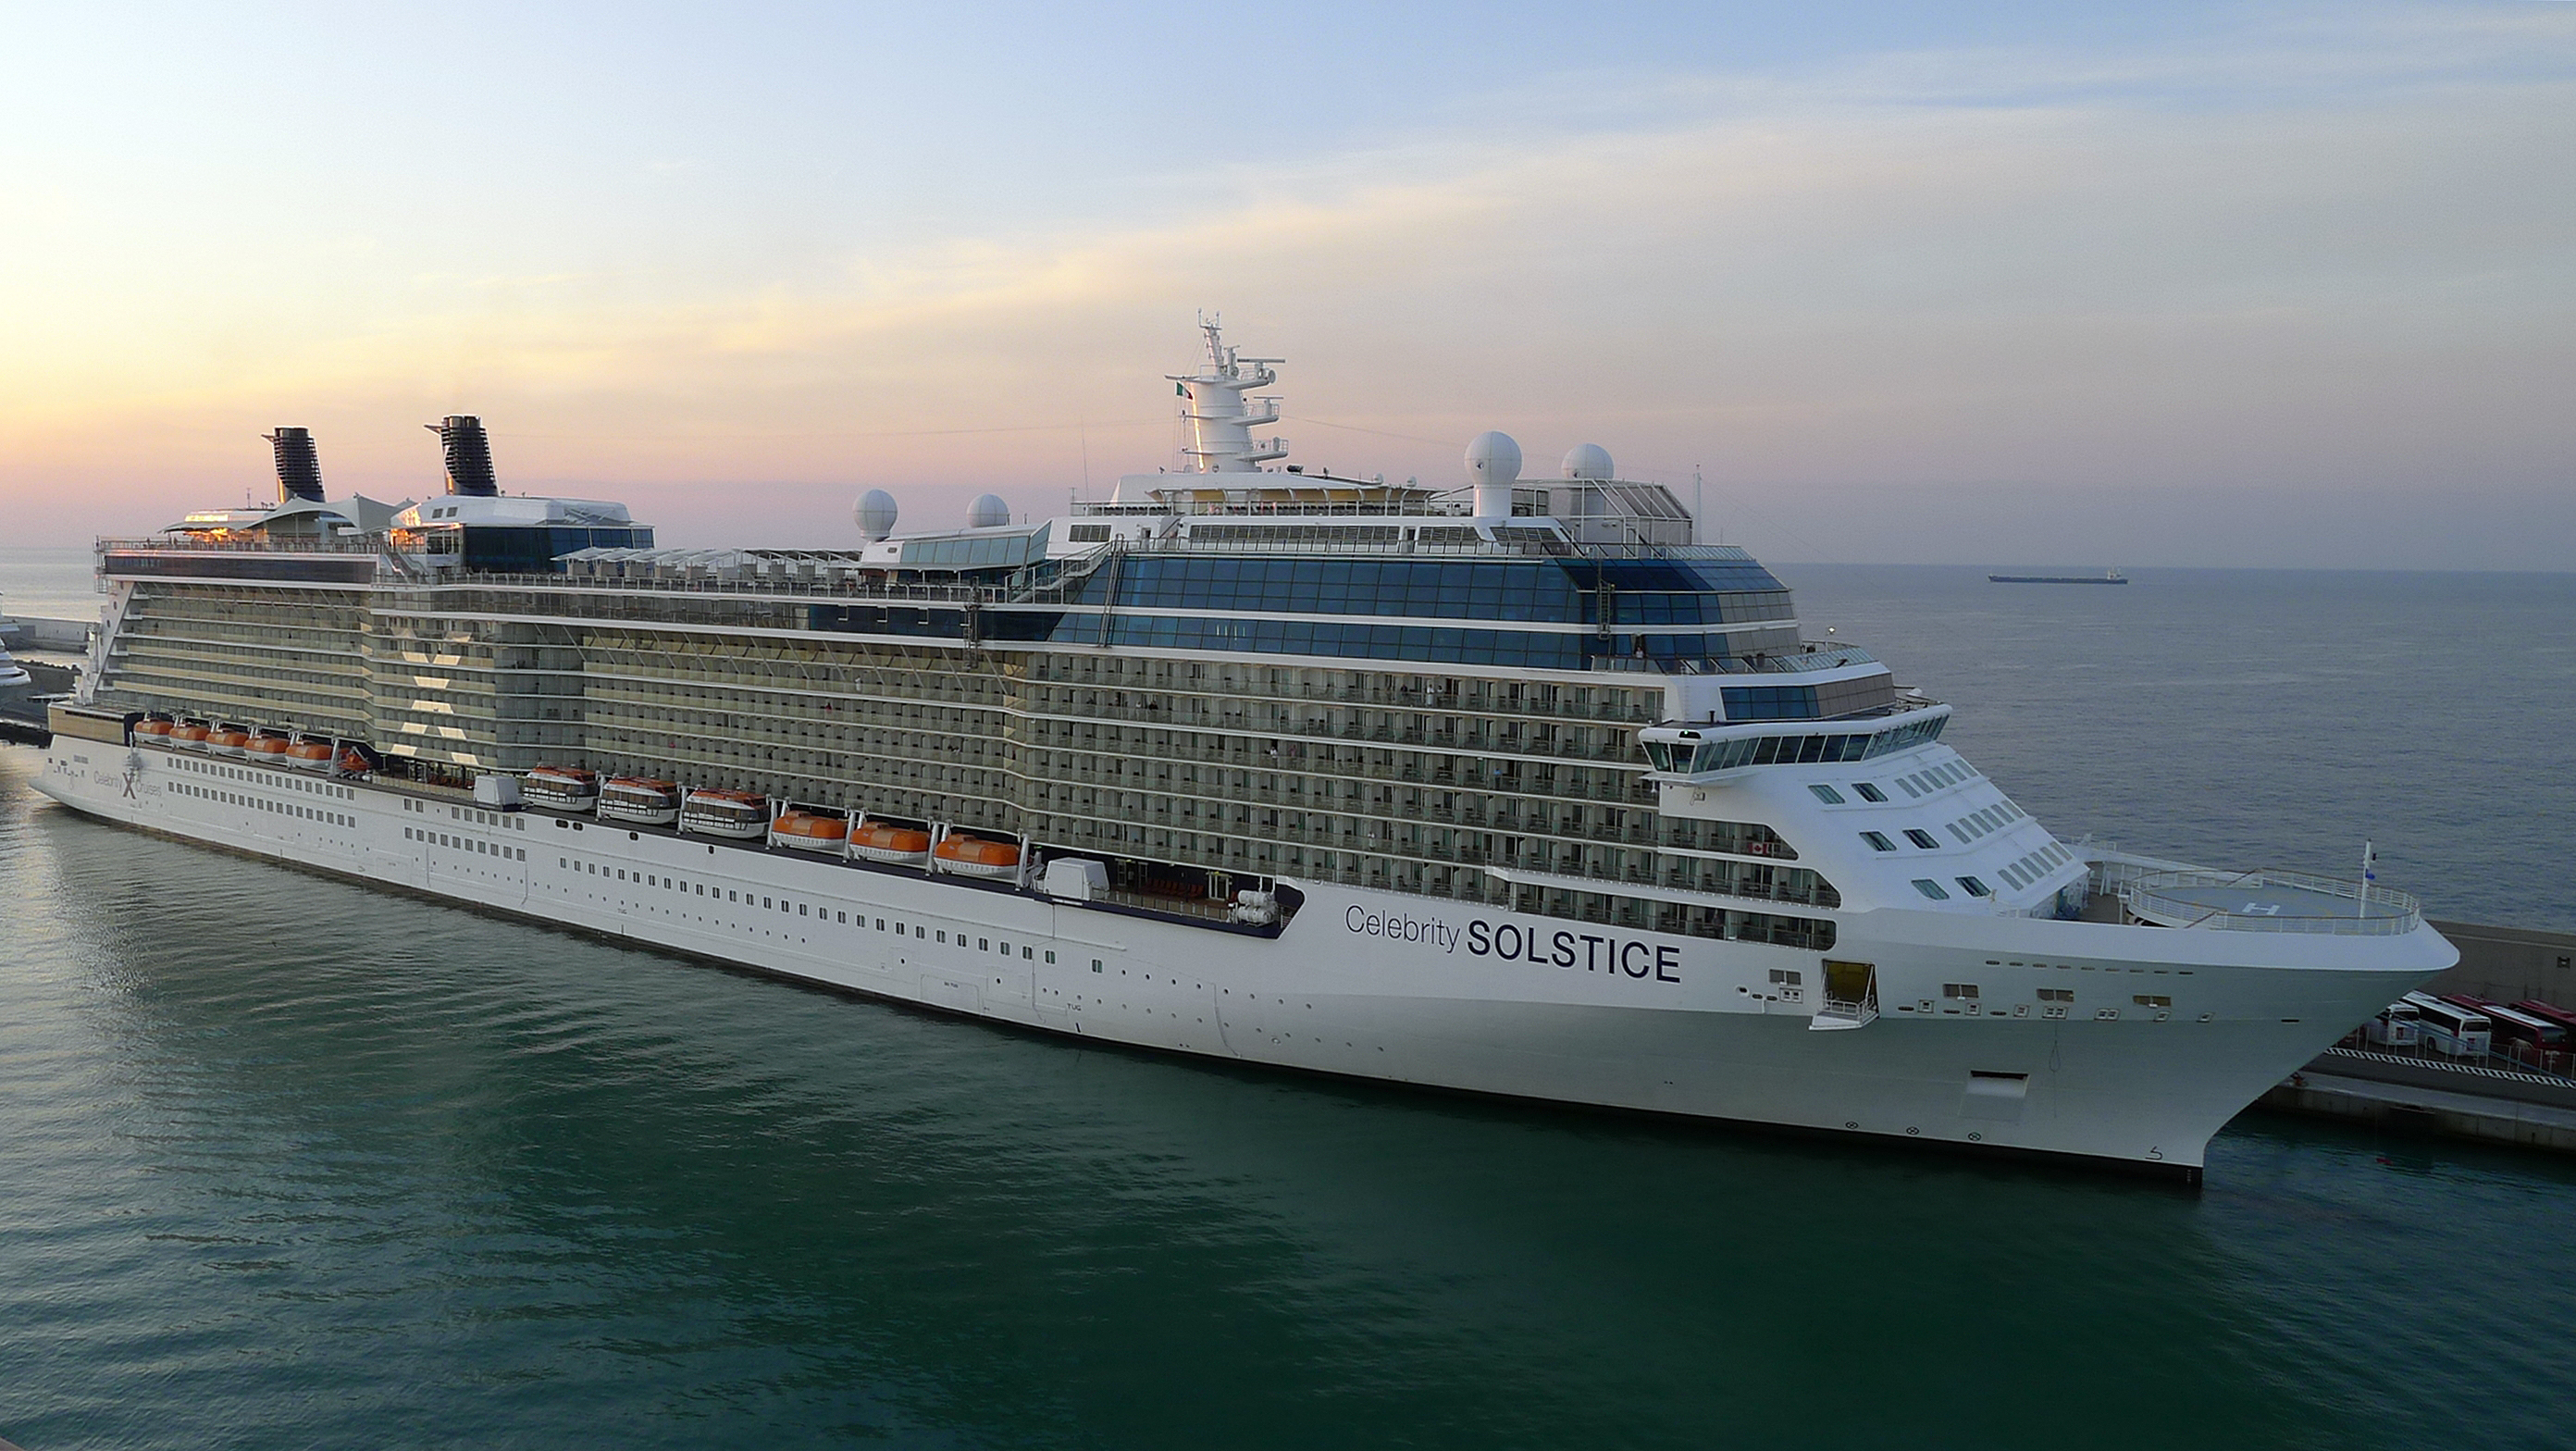 To acquire Cruises Celebrity solstice pictures picture trends